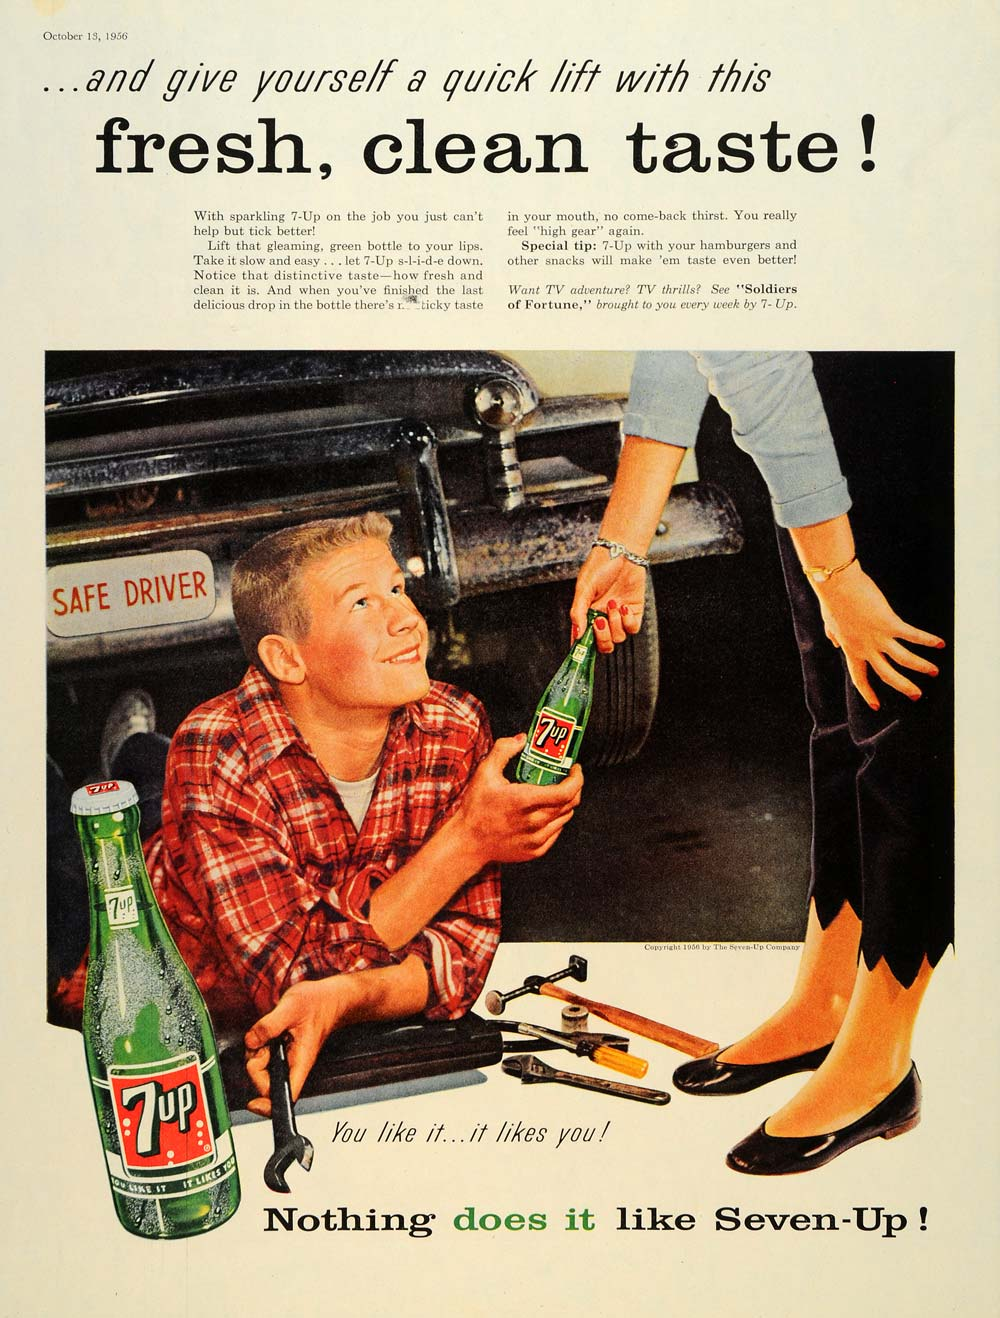 1956 Ad Vintage Car 7-UP Soldiers of Fortune Mechanic - ORIGINAL SEP4